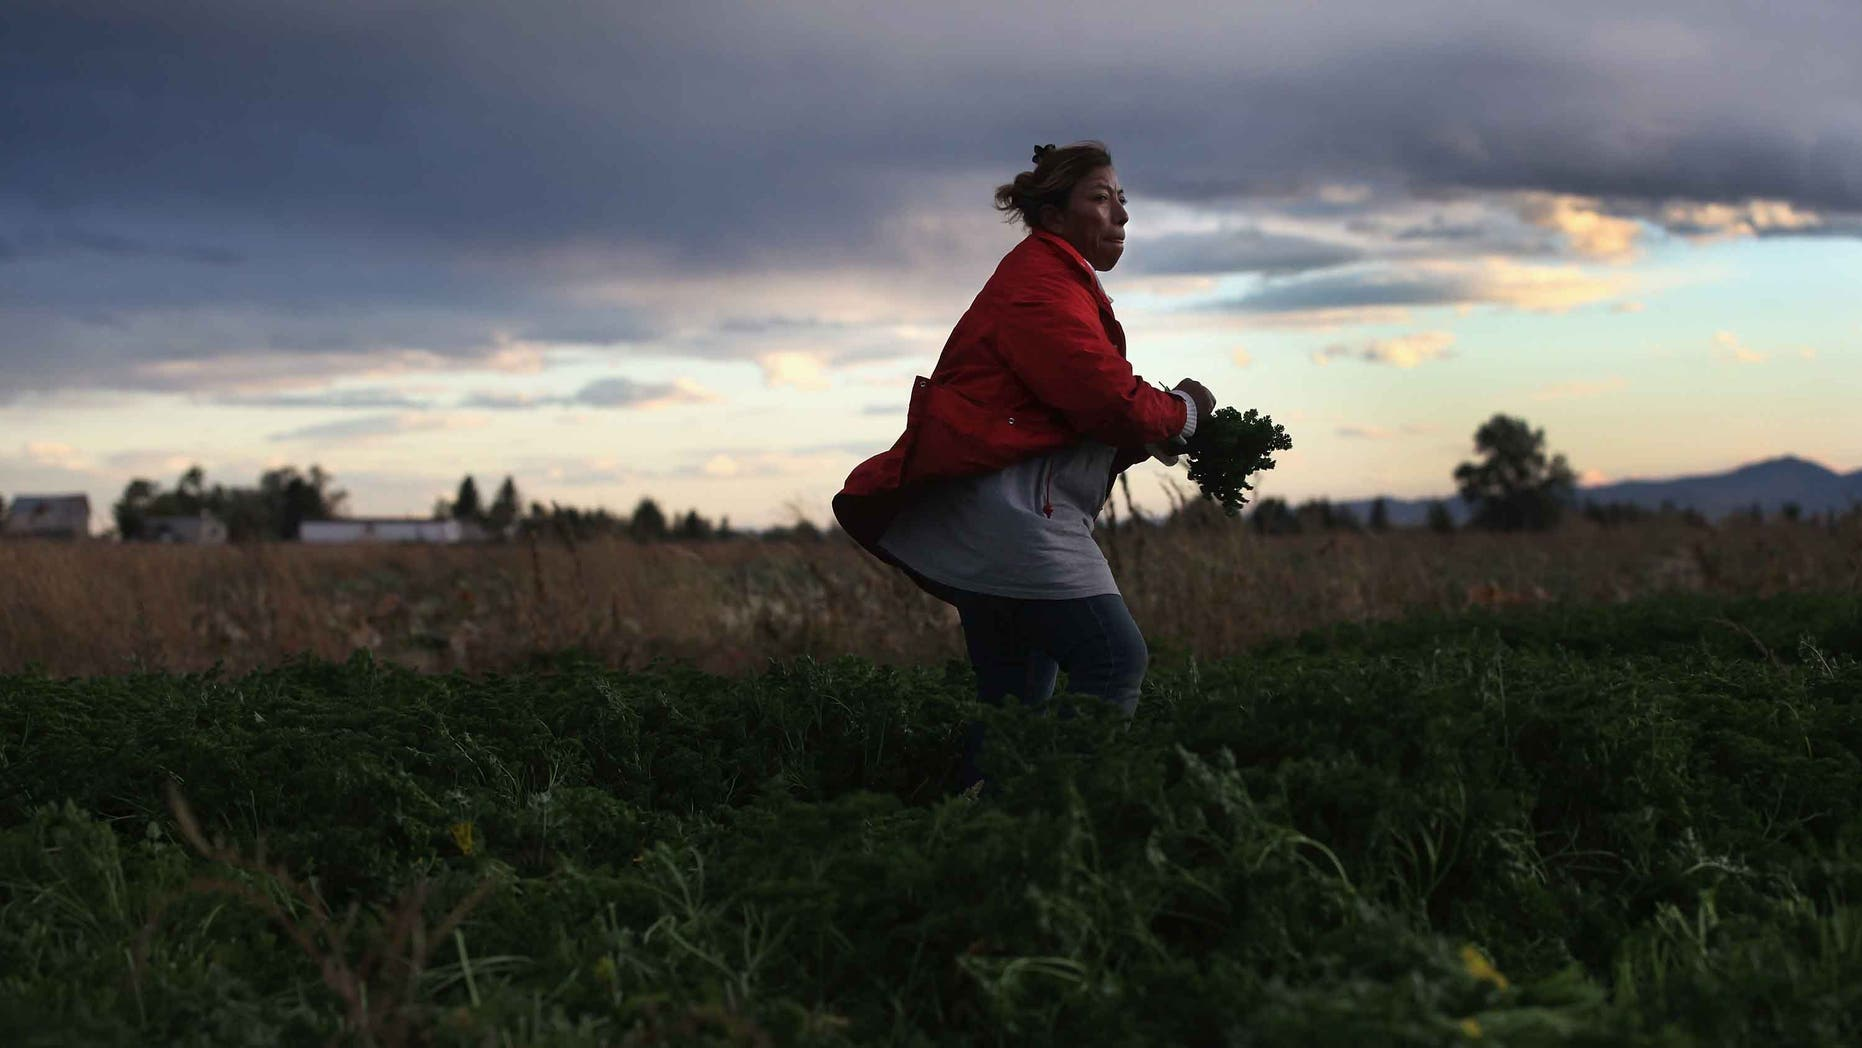 """WELLINGTON, CO - OCTOBER 11:  A Mexican immigrant worker harvests organic parsley at Grant Family Farms on October 11, 2011 in Wellington, Colorado. Although demand for the farm's organic produce is high, Andy Grant said that his migrant labor force, mostly from Mexico, is sharply down this year and that he'll be unable to harvest up to a third of his fall crops, leaving vegetables in the fields to rot. He said that stricter U.S. immigration policies nationwide have created a """"climate of fear"""" in the immigrant community and many workers have either gone back to Mexico or have been deported. Although Grant requires proof of legal immigration status from his employees, undocumented migrant workers frequently obtain falsified permits in order to work throughout the U.S. Many farmers nationwide say they have found it nearly impossible to hire American citizens for labor-intensive seasonal farm work.  (Photo by John Moore/Getty Images)"""